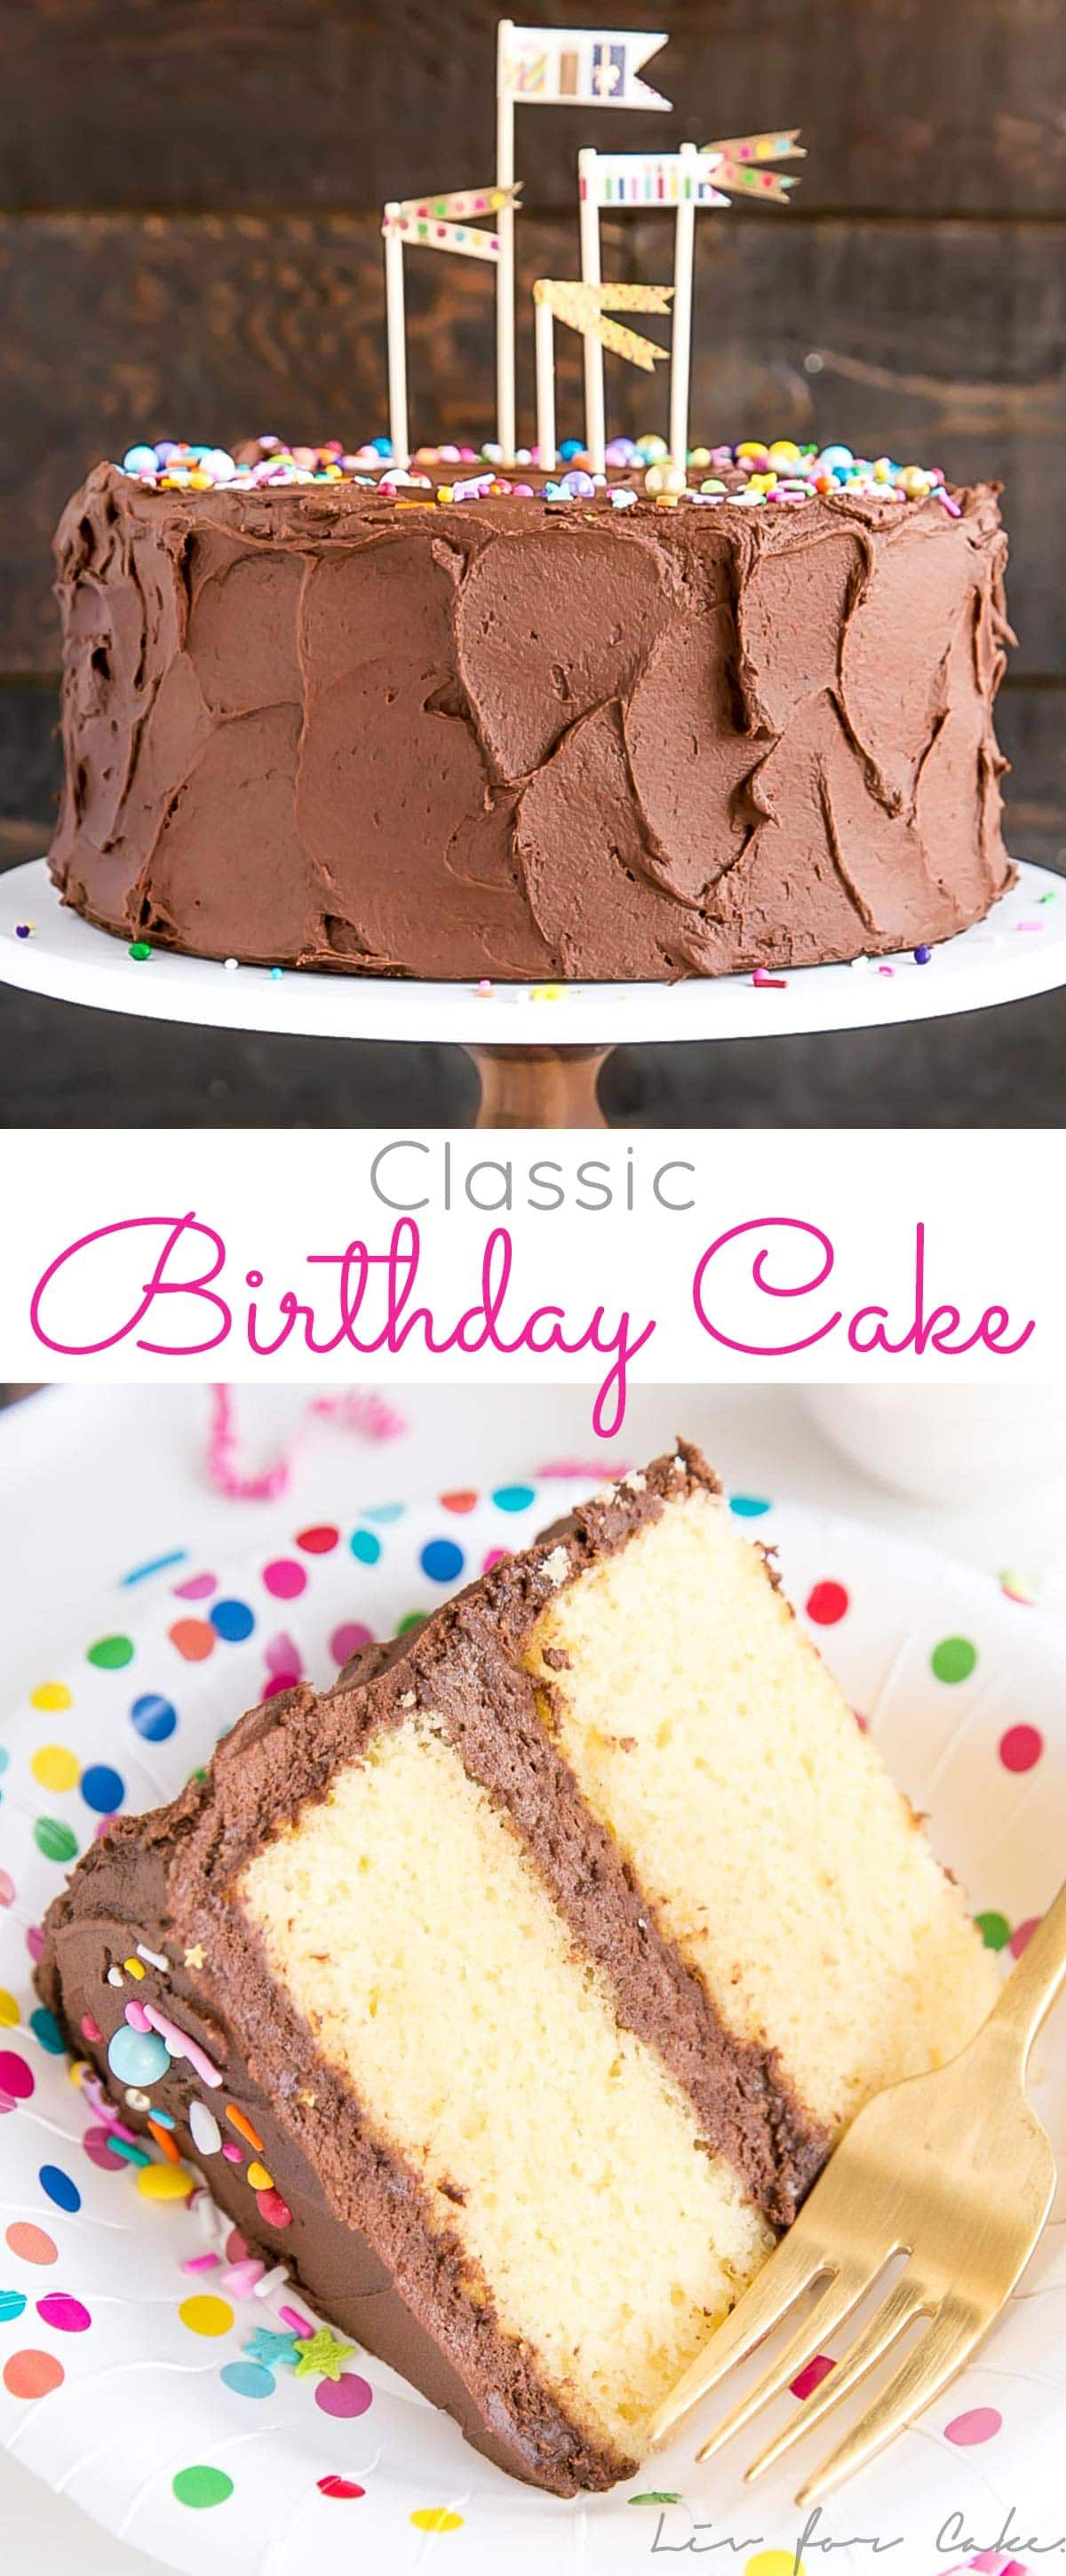 The Ultimate Birthday Cake A Classic Yellow With Rich Chocolate Frosting And Colorful Sprinkles